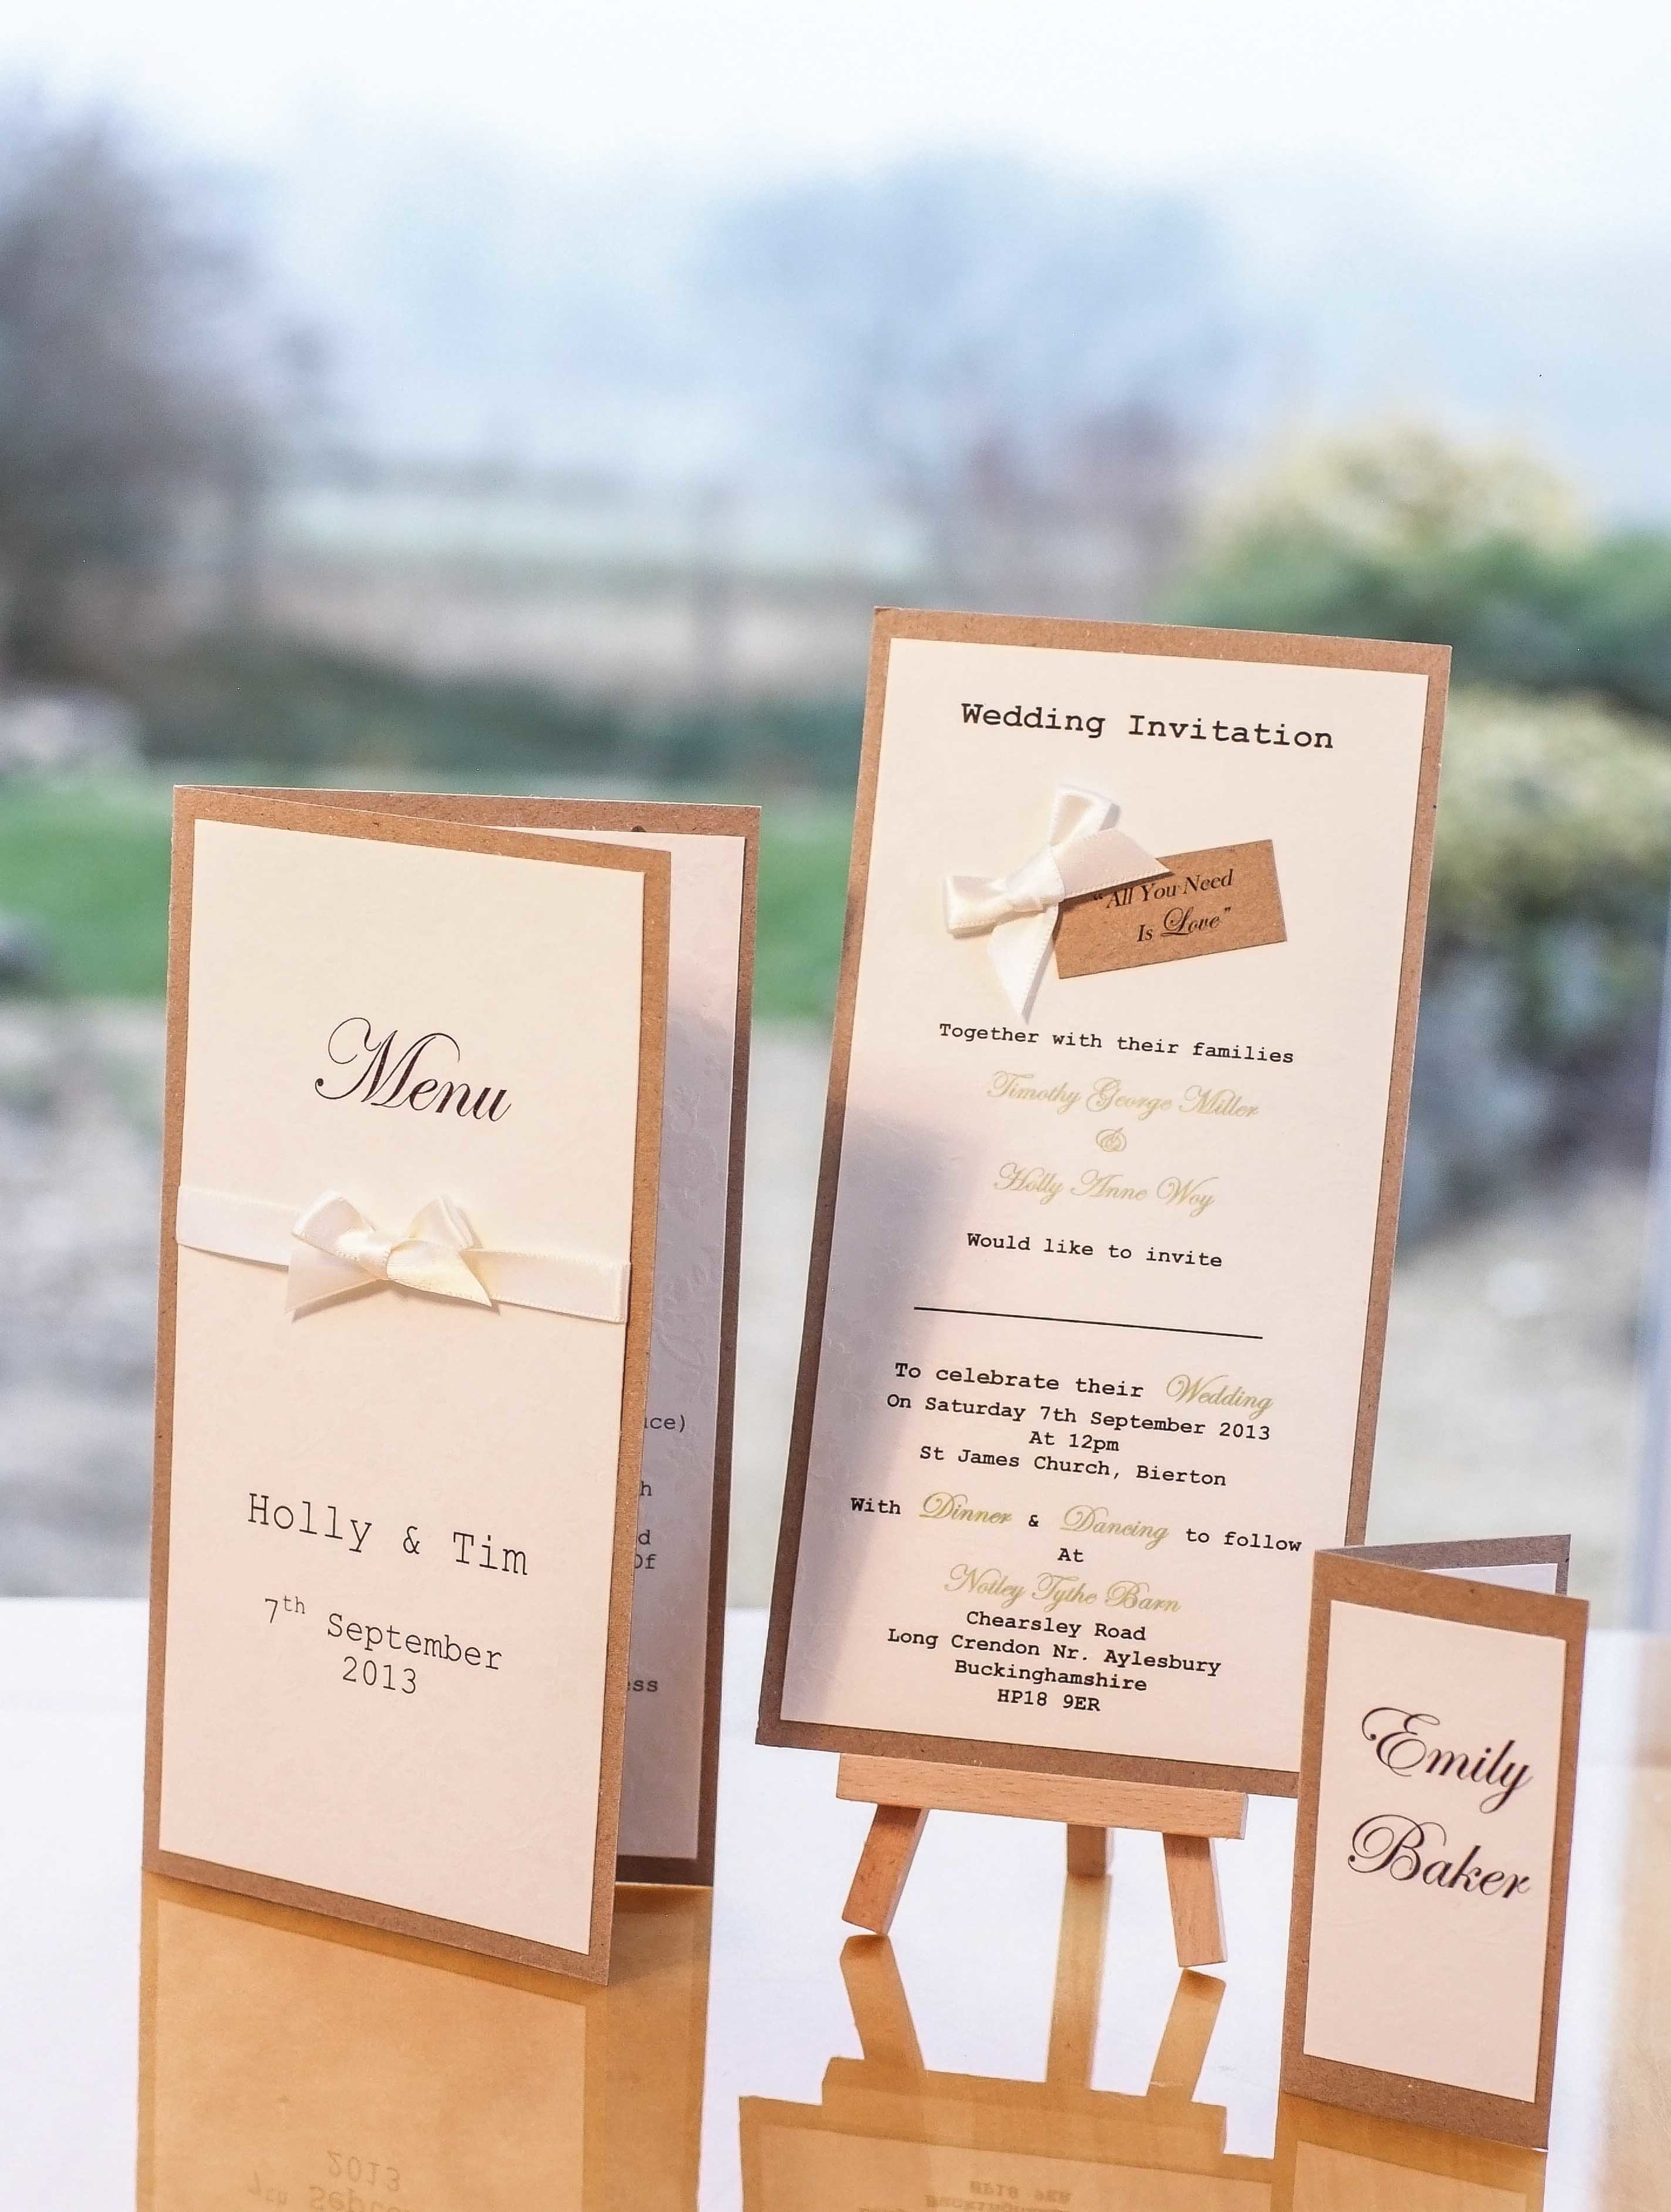 All you need is love wedding invitation created in Oxfordshire for Holly and Tim